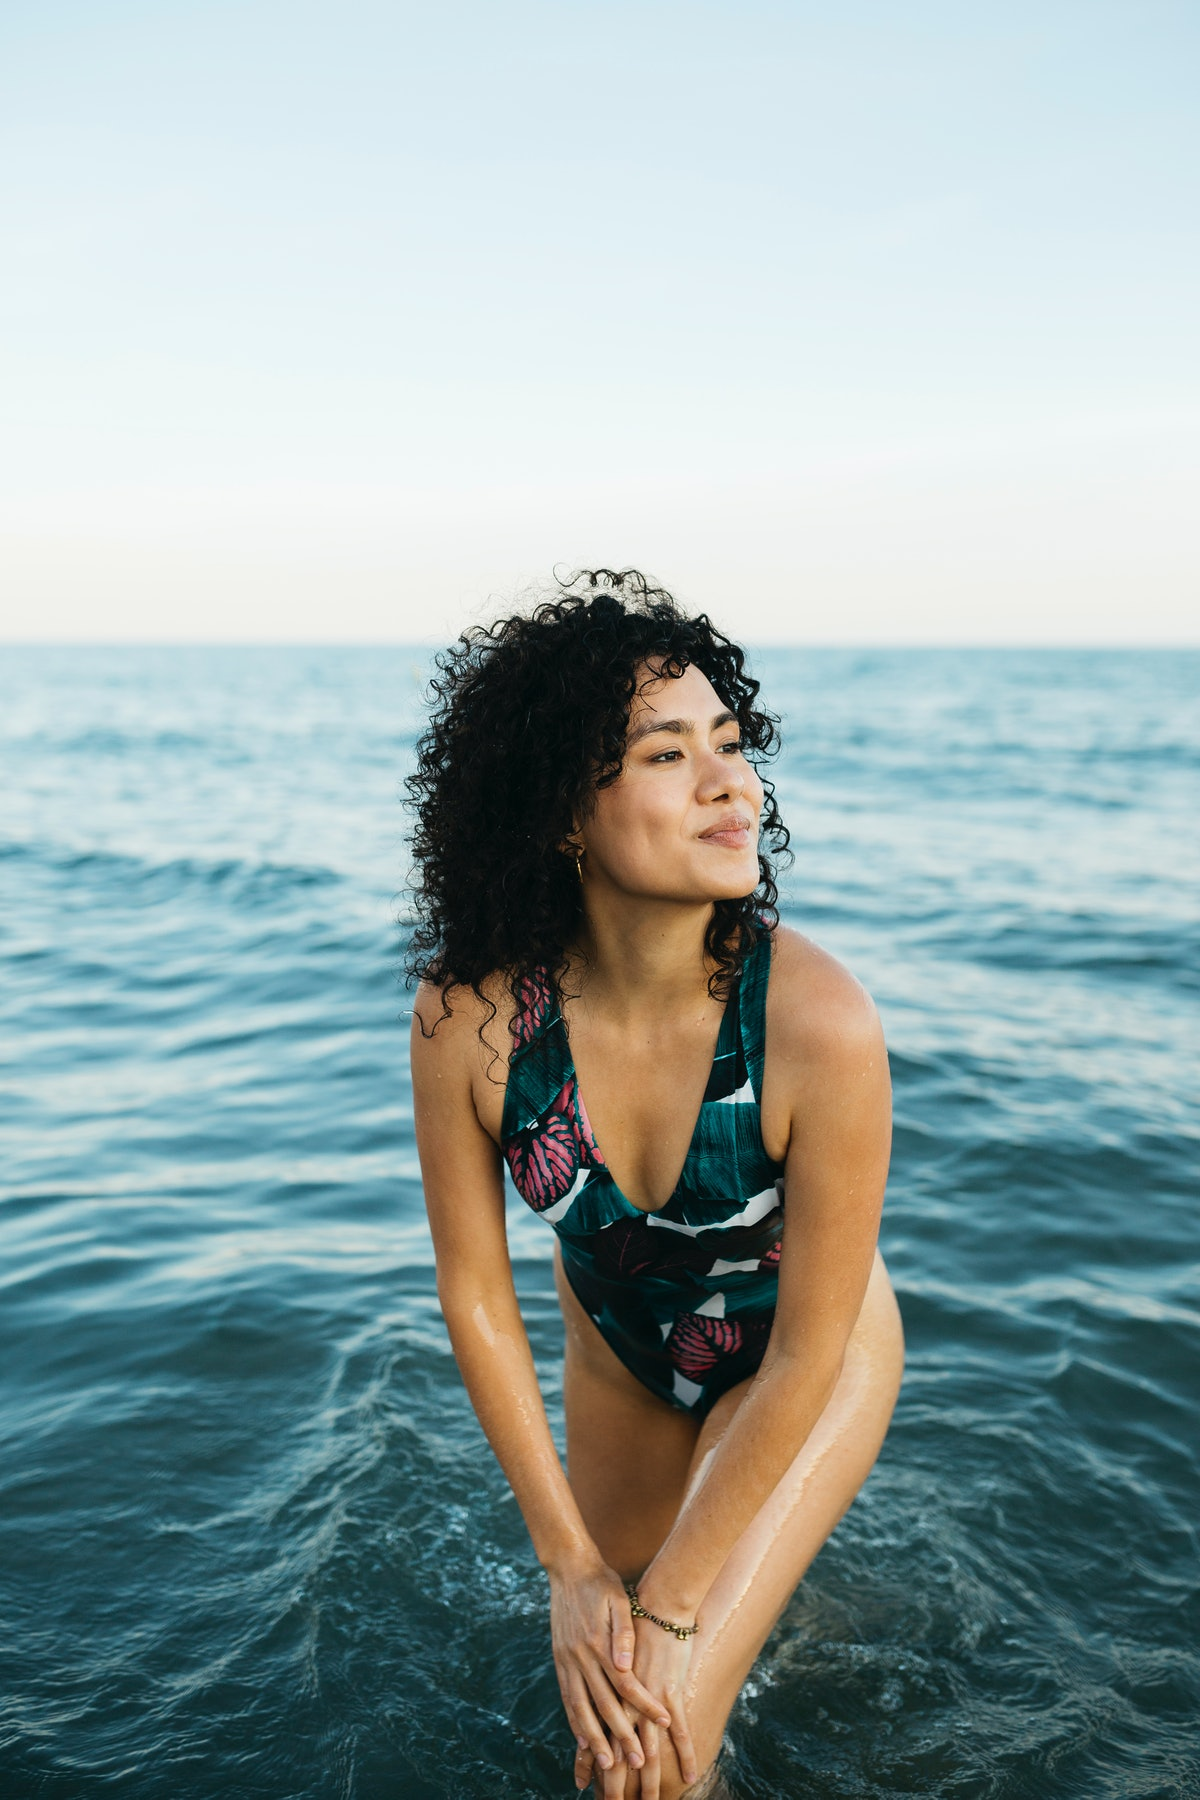 Young woman wearing swimsuit in the sea, smiling while the July 2021 new moon affects her the most.